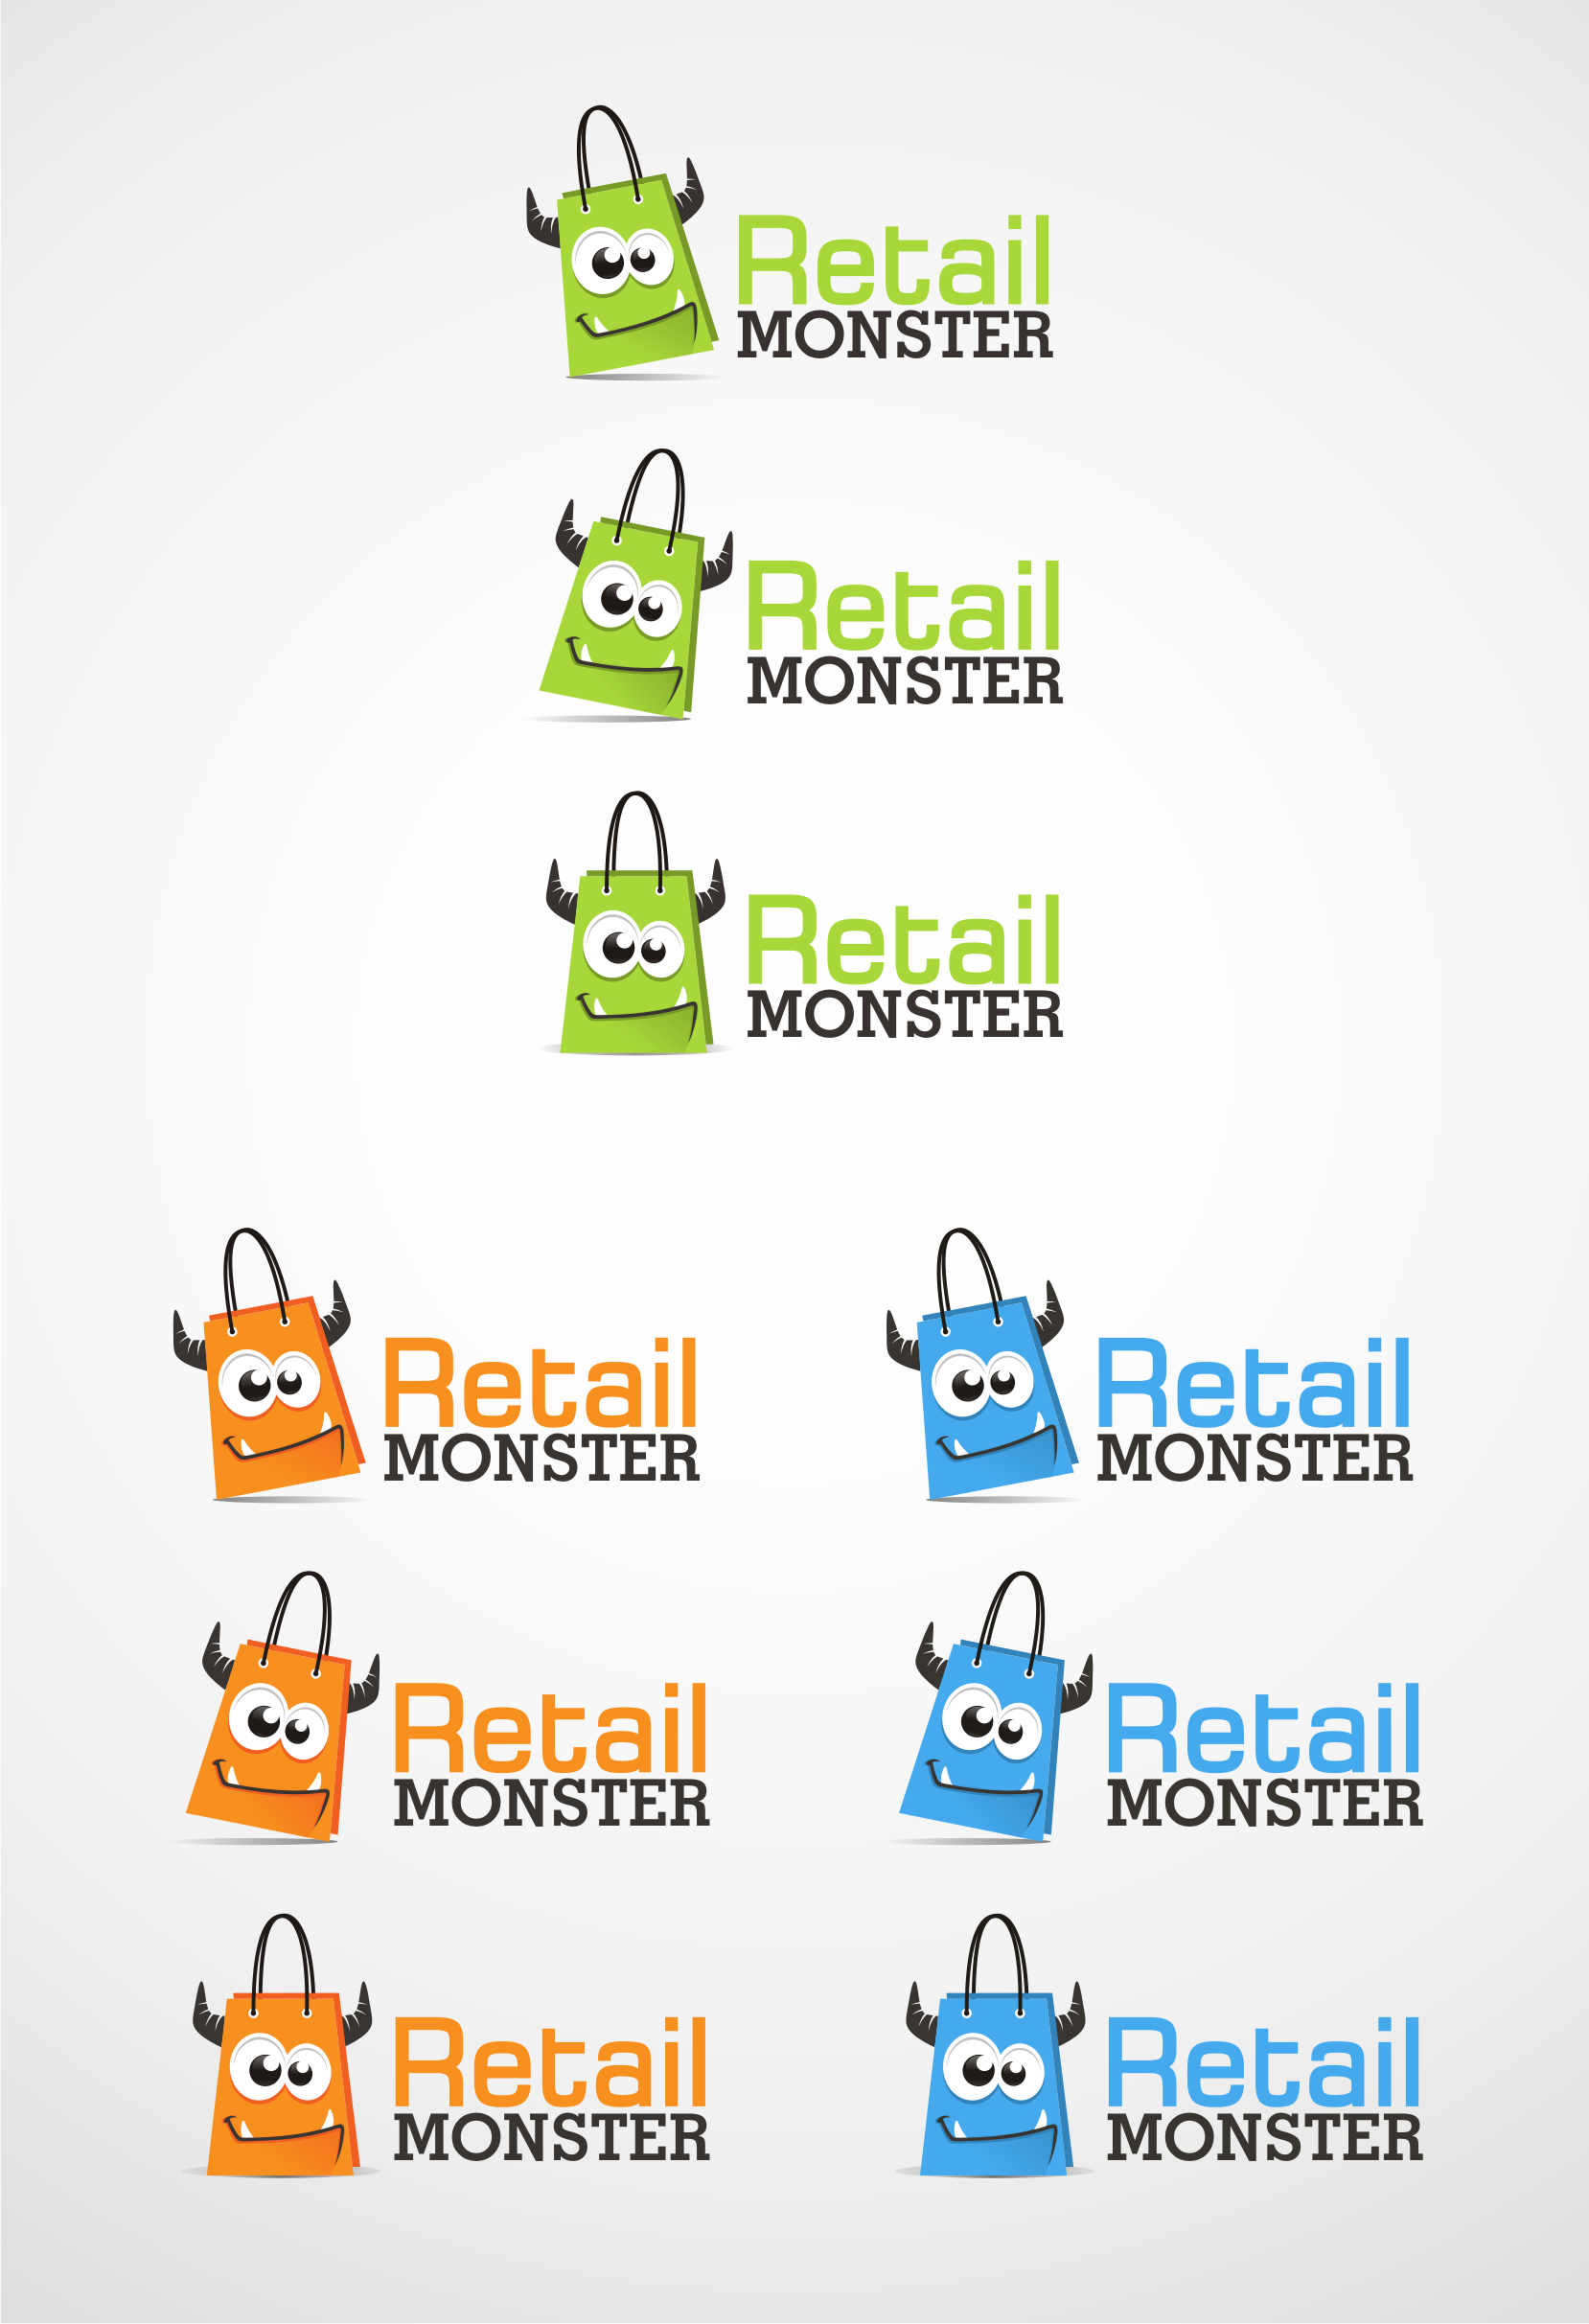 Become a MONSTER by designing a company logo - Simple, Integrated, and clean